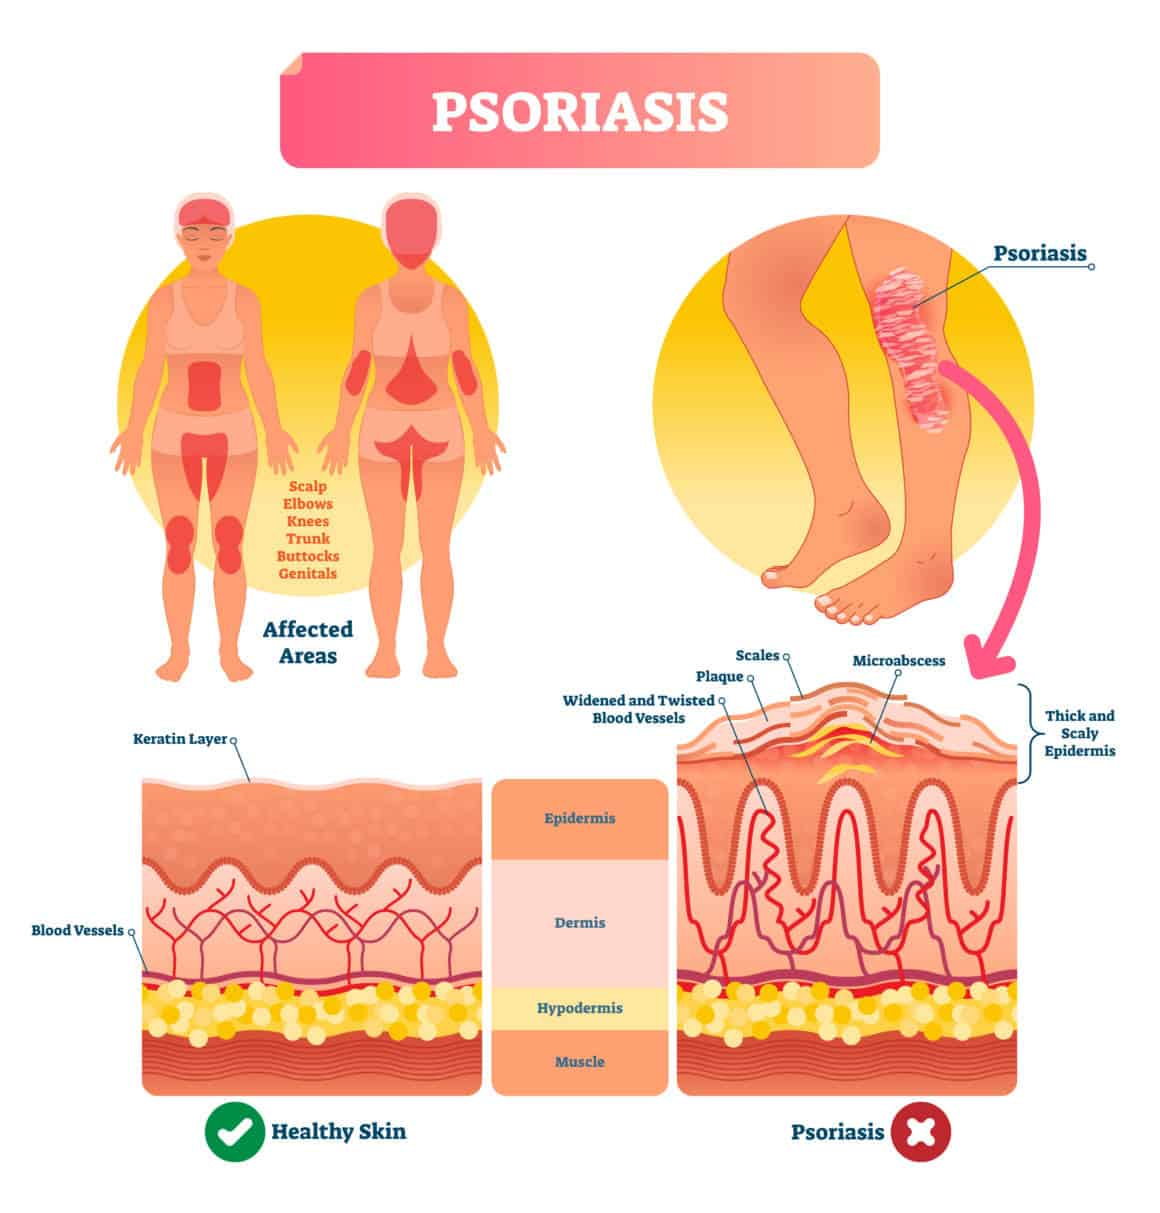 Psoriasis vector illustration. Autoimmune skin disease and illness. Labeled structure with scales, plaque, widened and twisted blood vessels. Shown affected areas on human body.